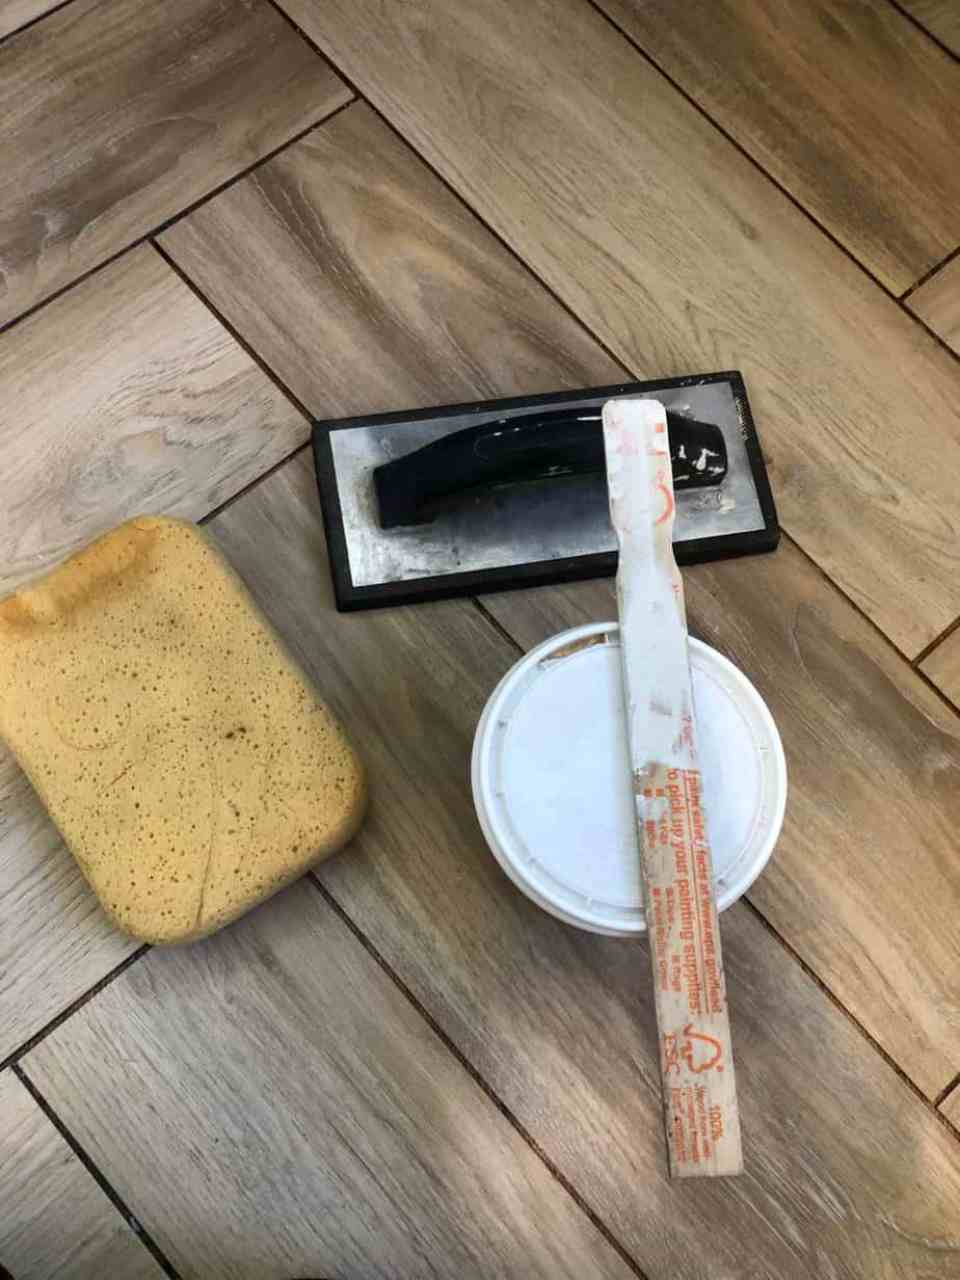 grout tool and sponge